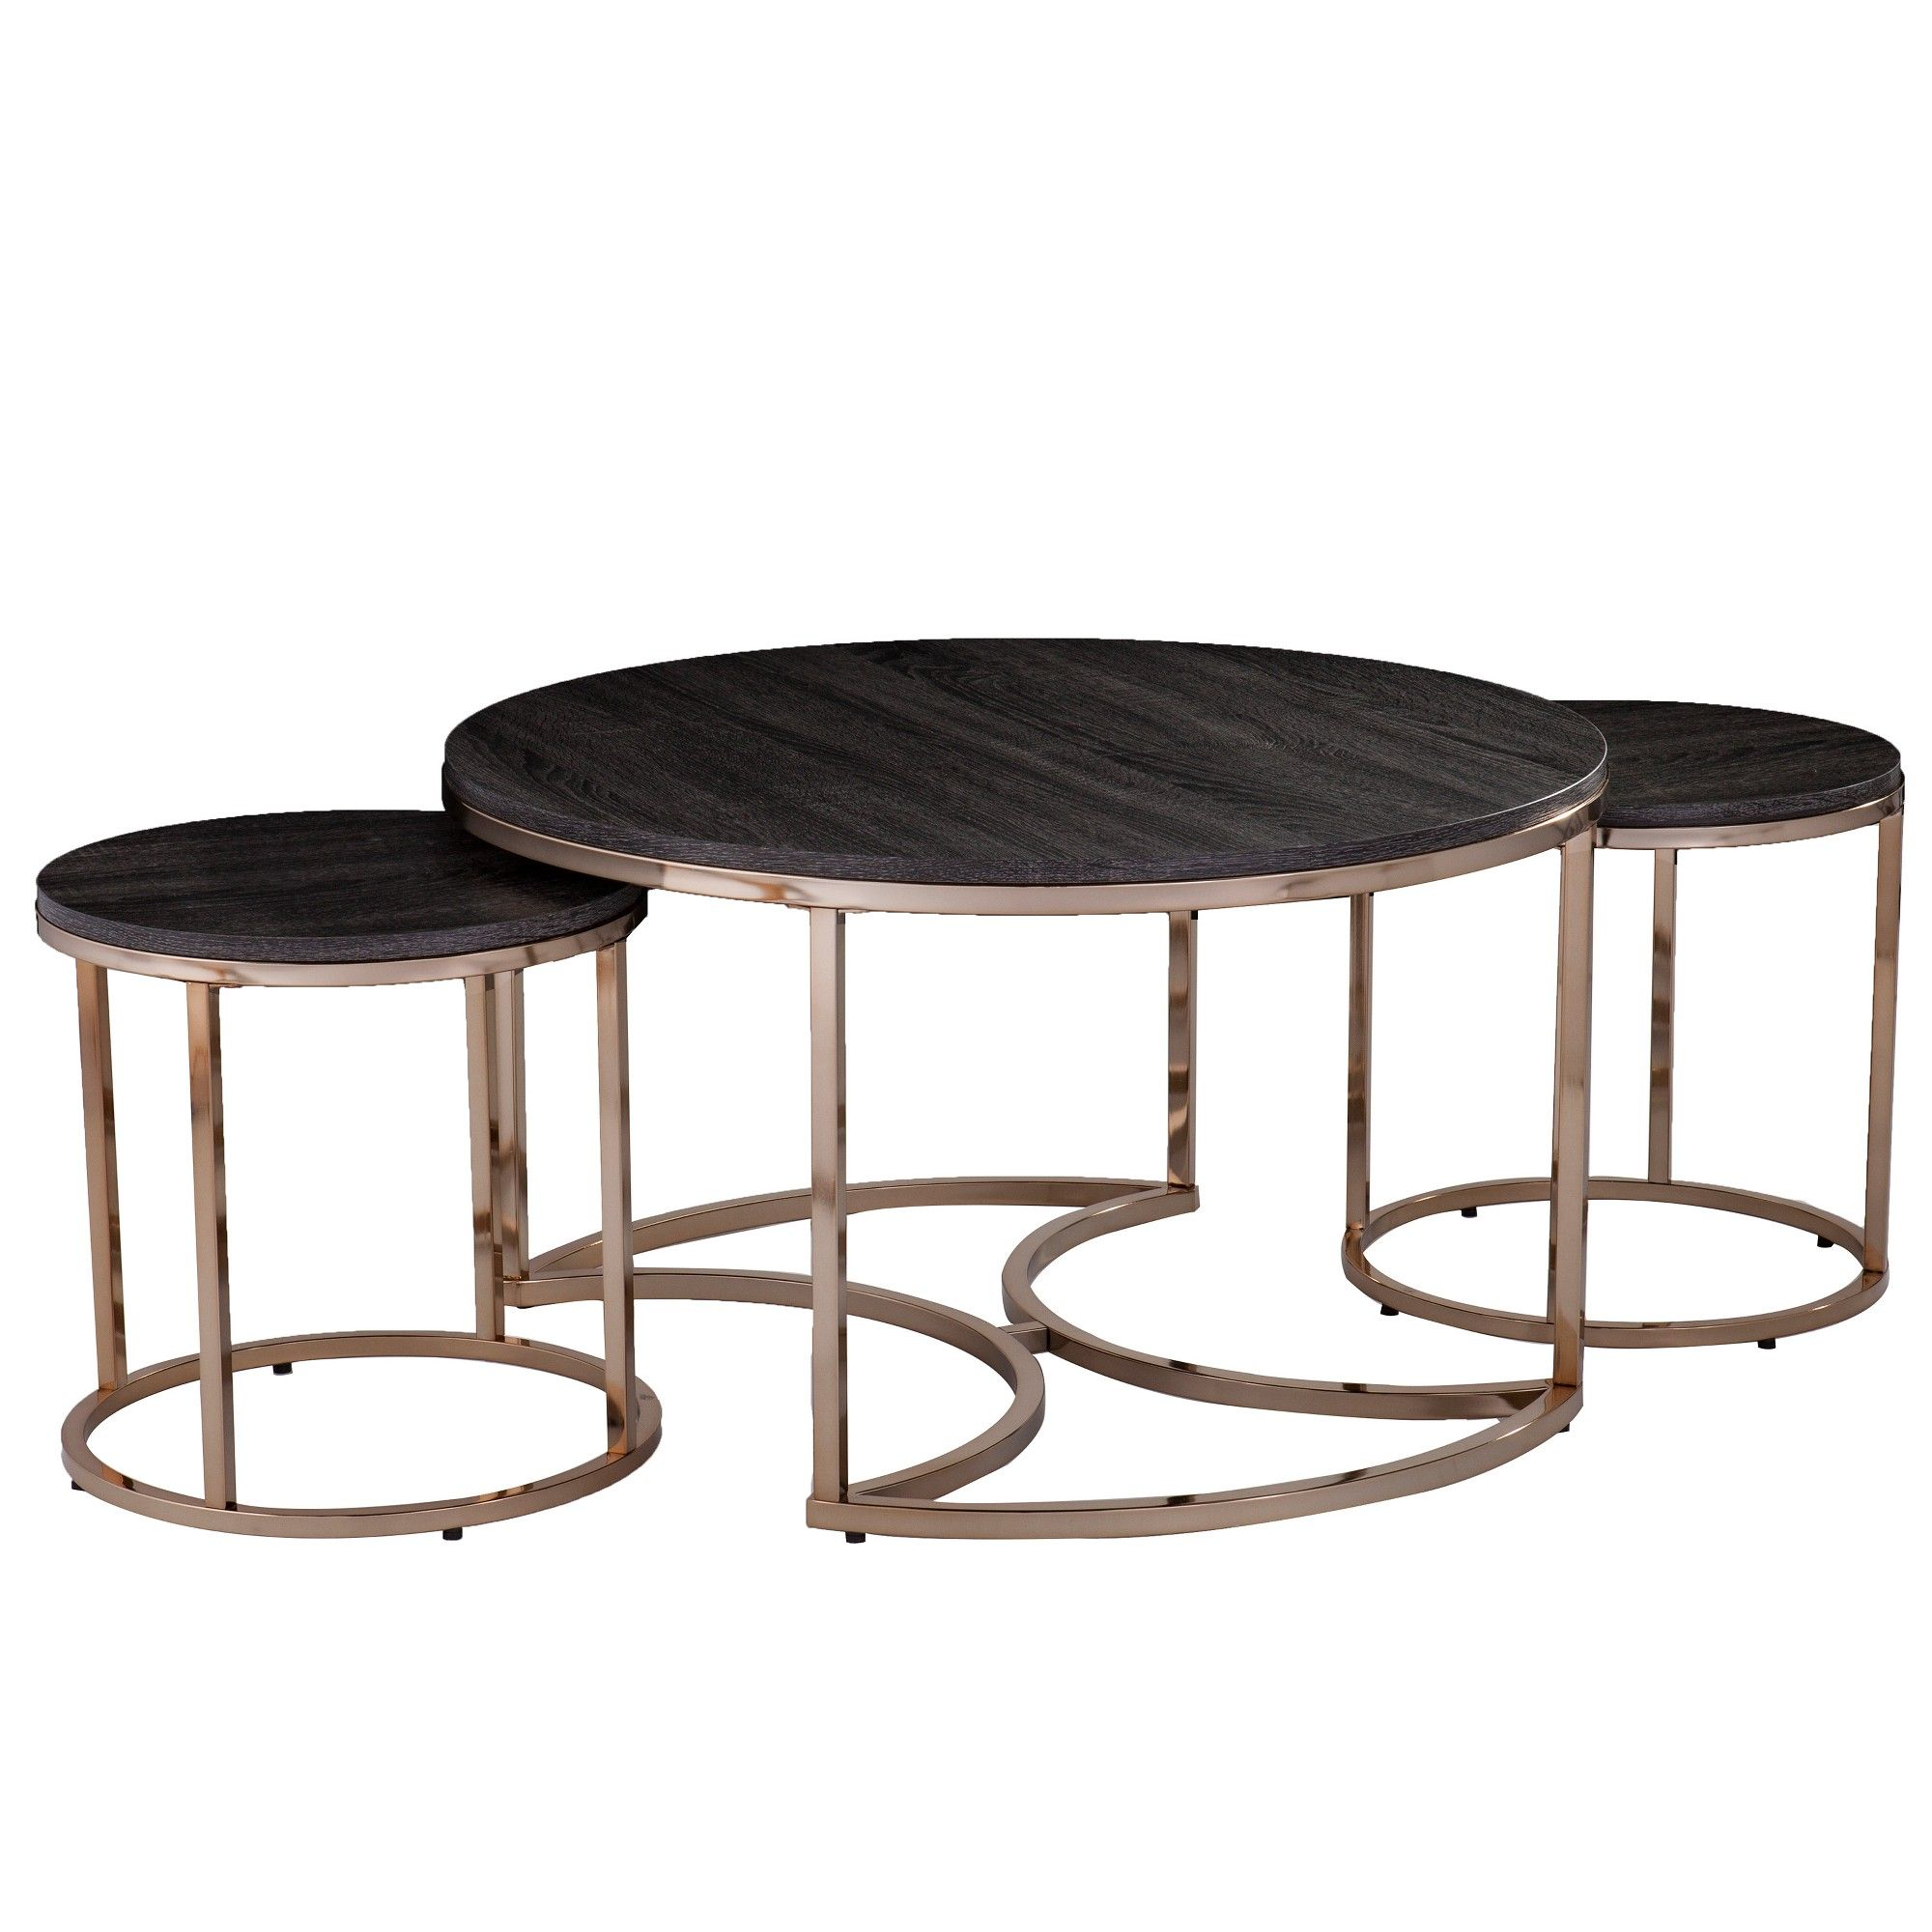 3pc Linder Round Nesting Coffee Tables Champagne Aiden Lane Nesting Coffee Tables Espresso Coffee Table Round Nesting Coffee Tables [ 2000 x 2000 Pixel ]